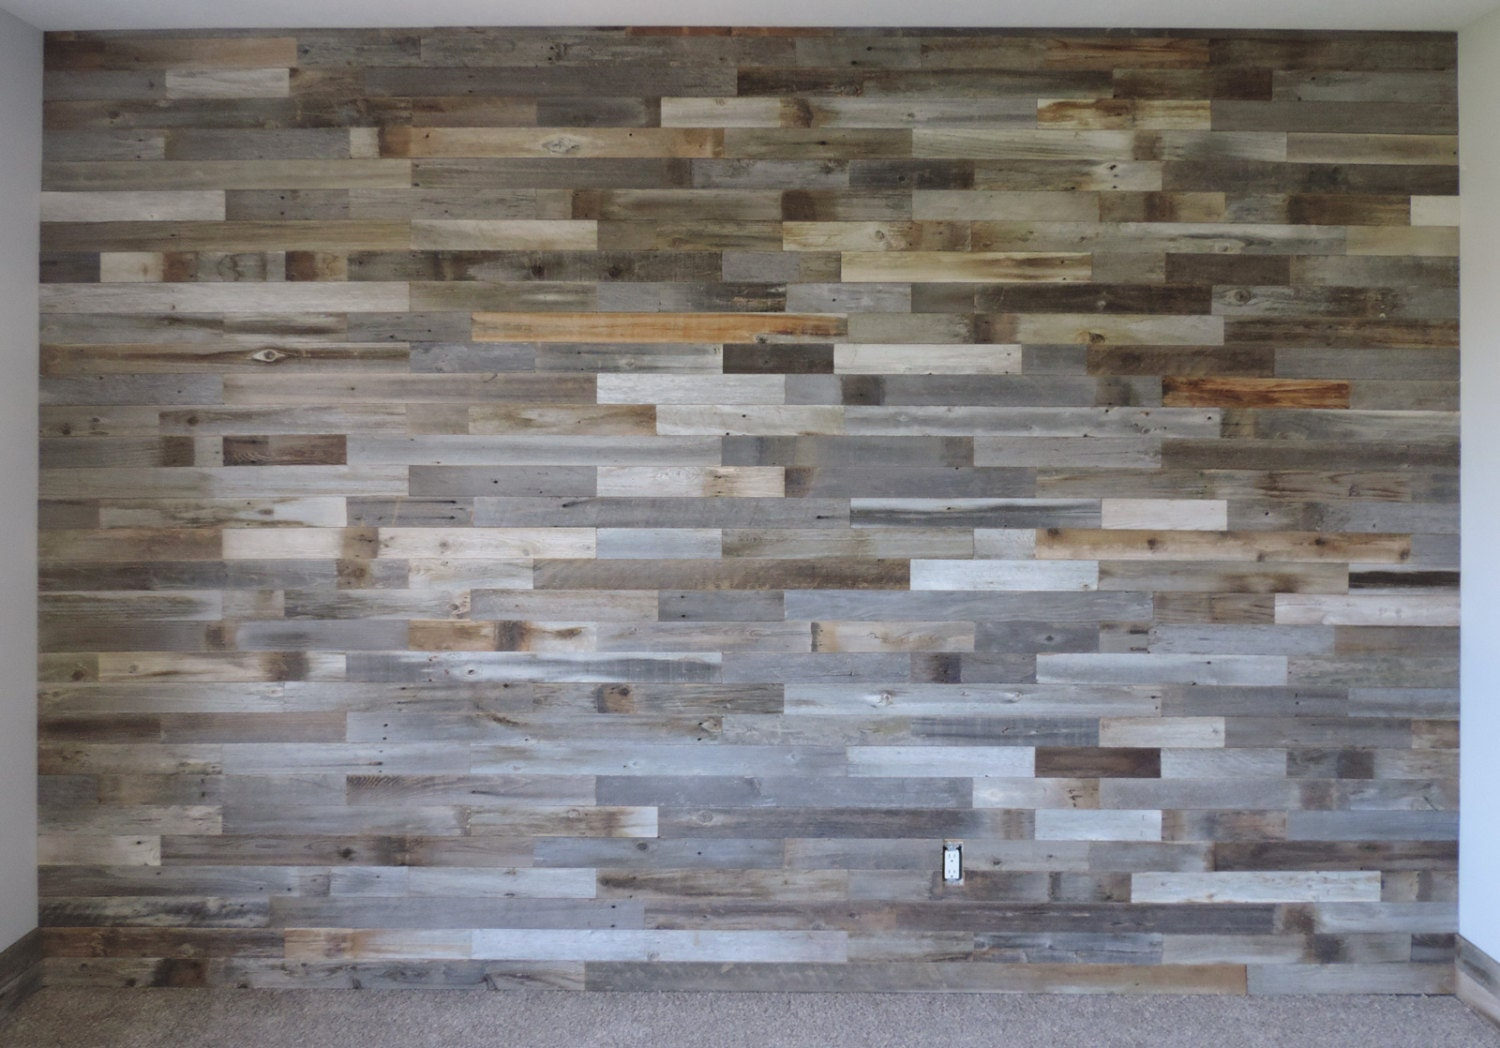 Wooden Wall Boards : Reclaimed wood wall paneling diy asst inch boards by